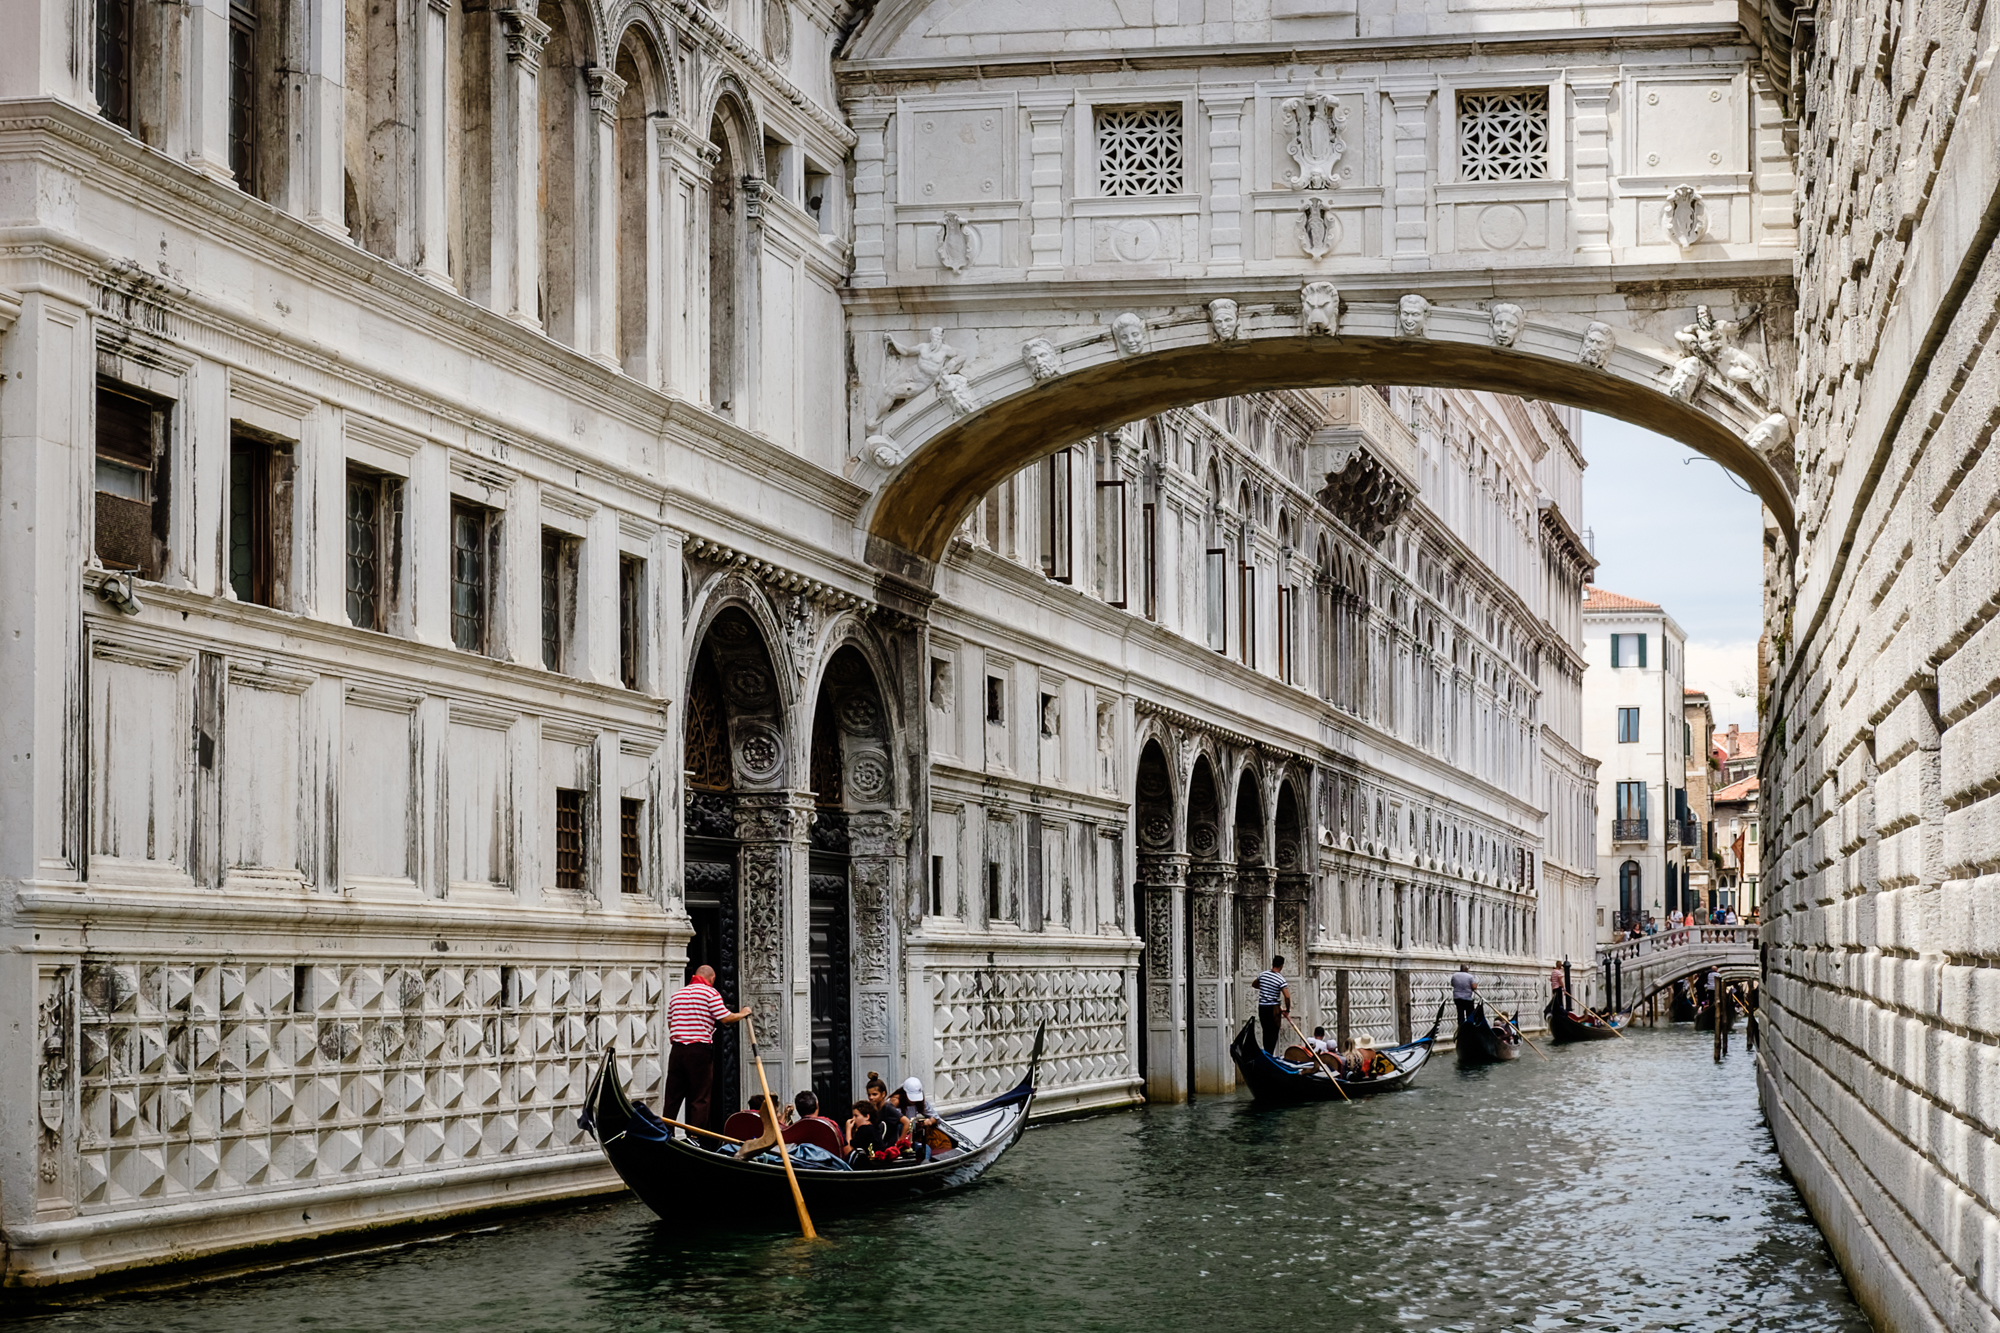 Photo of Gondolas under the Bridge of Sighs in Venice by Trevor Sherwin